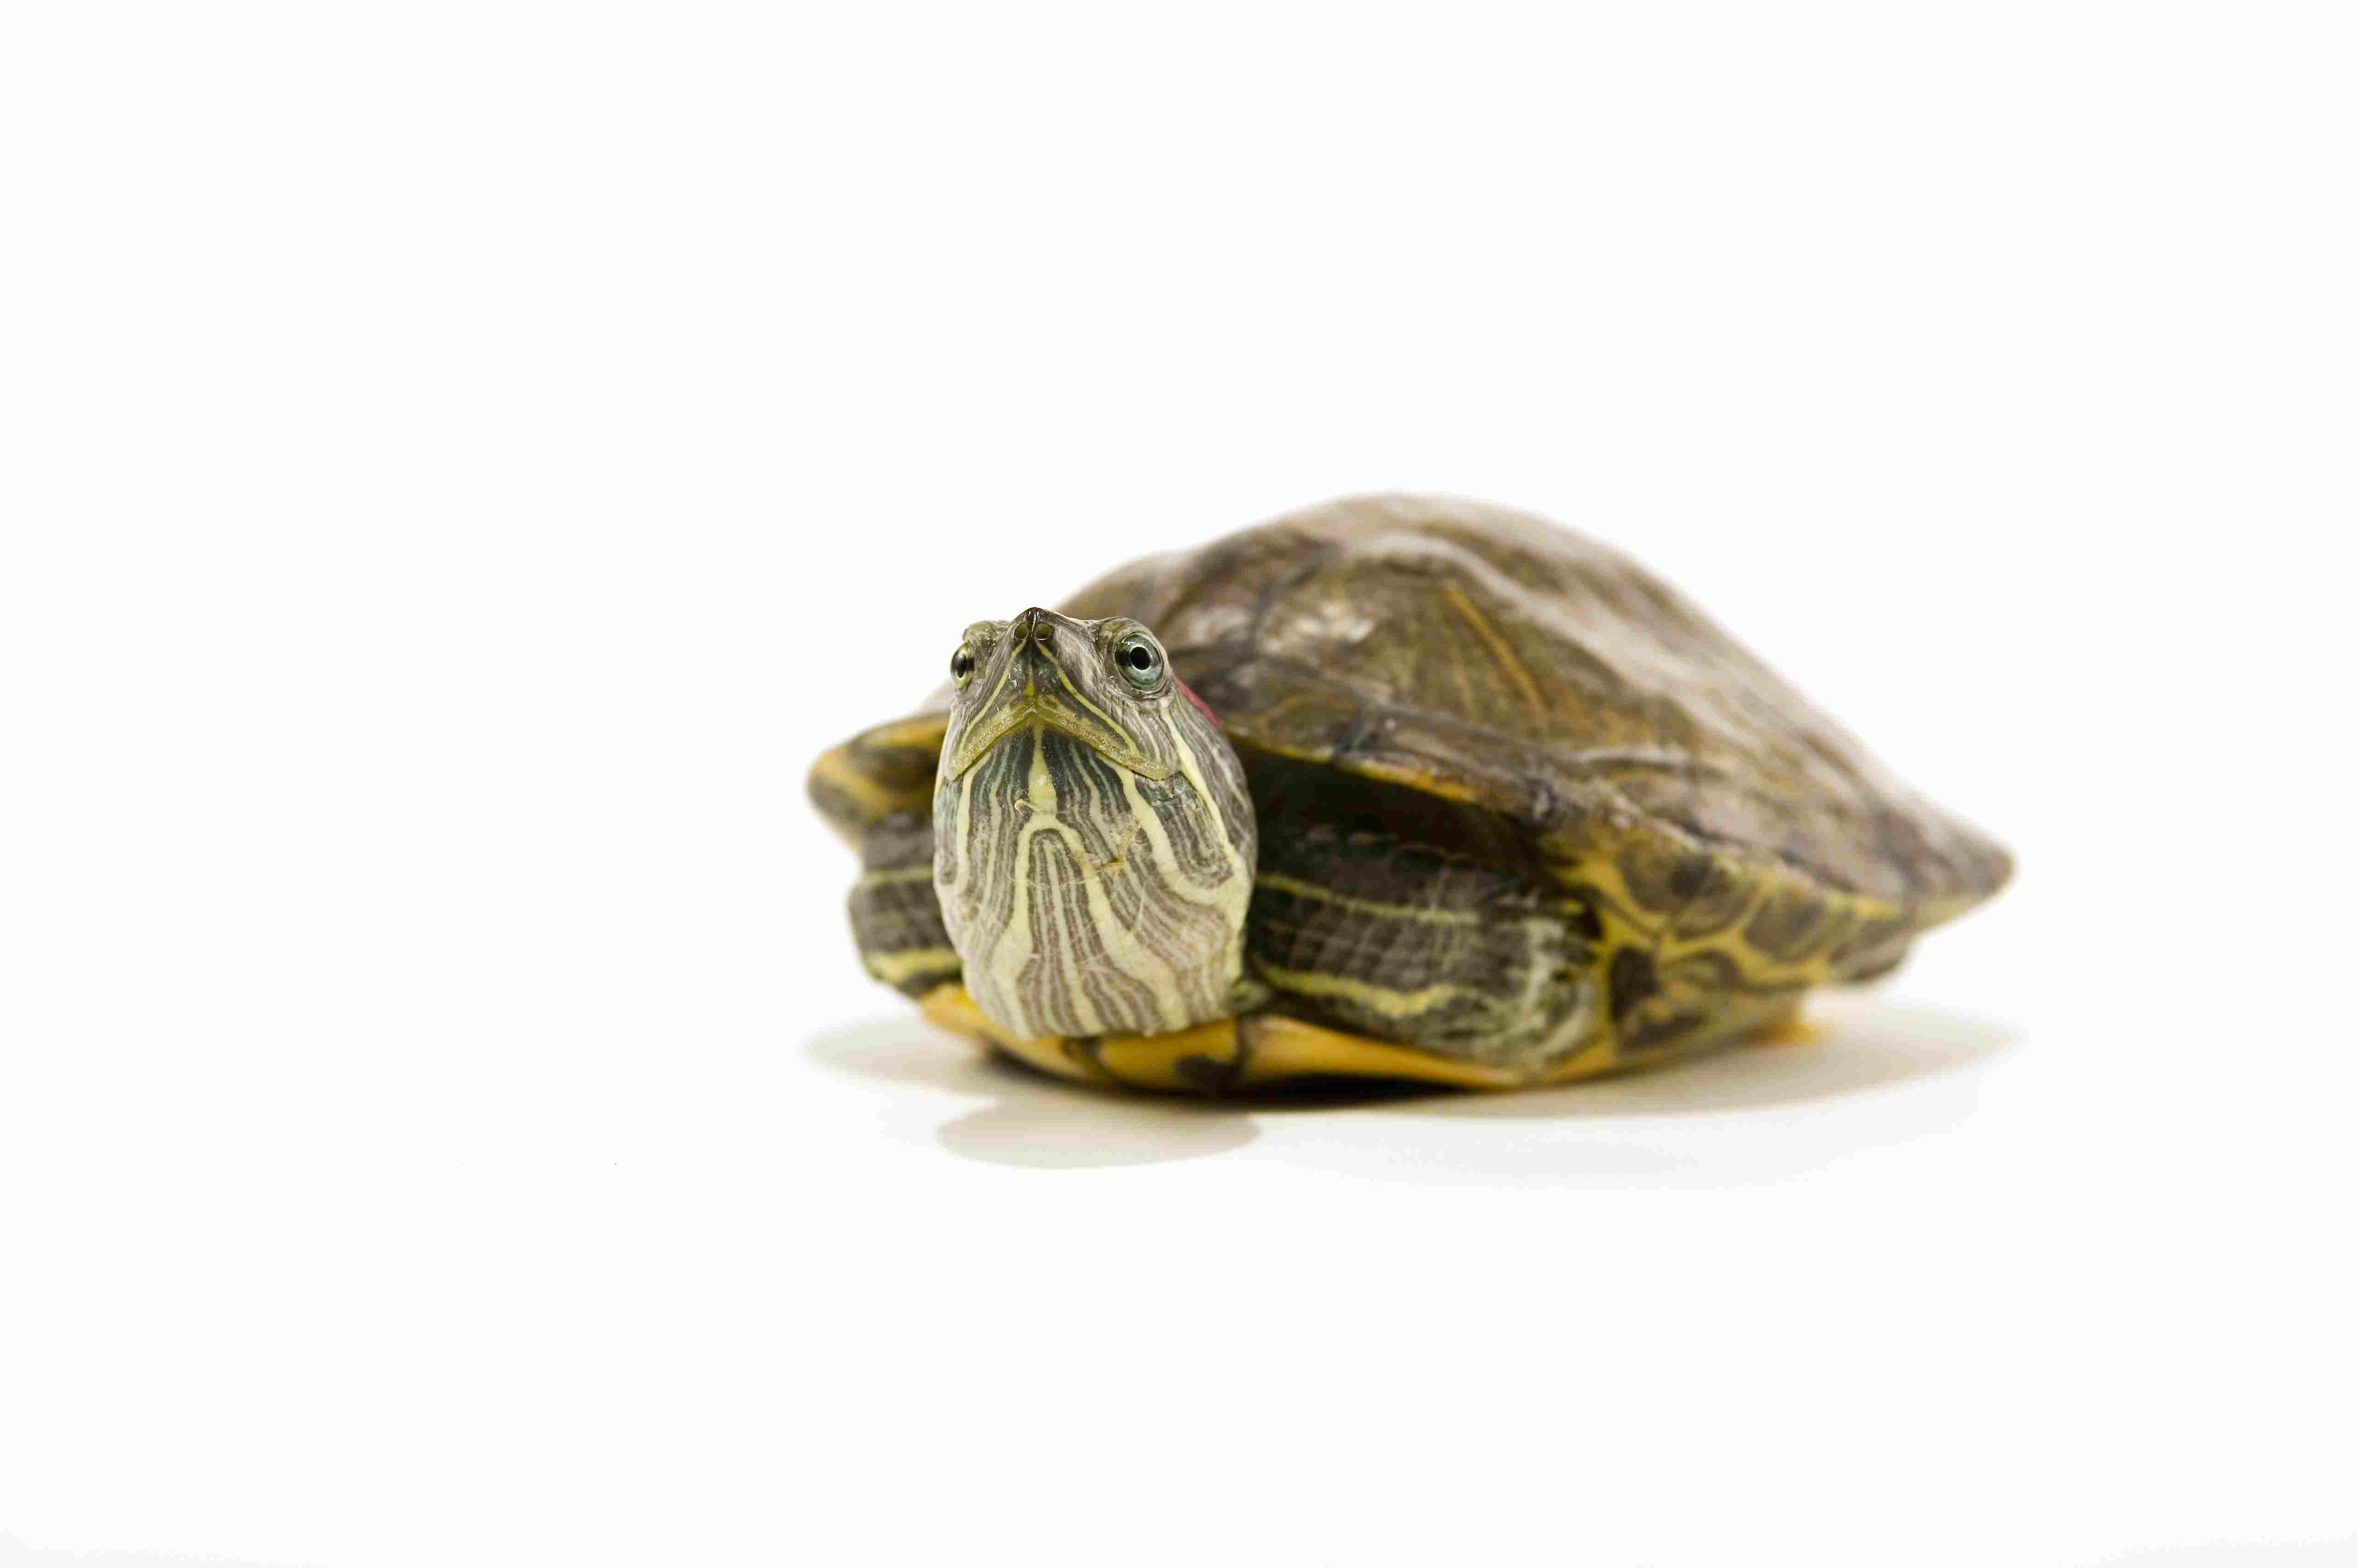 A Guide to Caring for Pet Red Eared Sliders